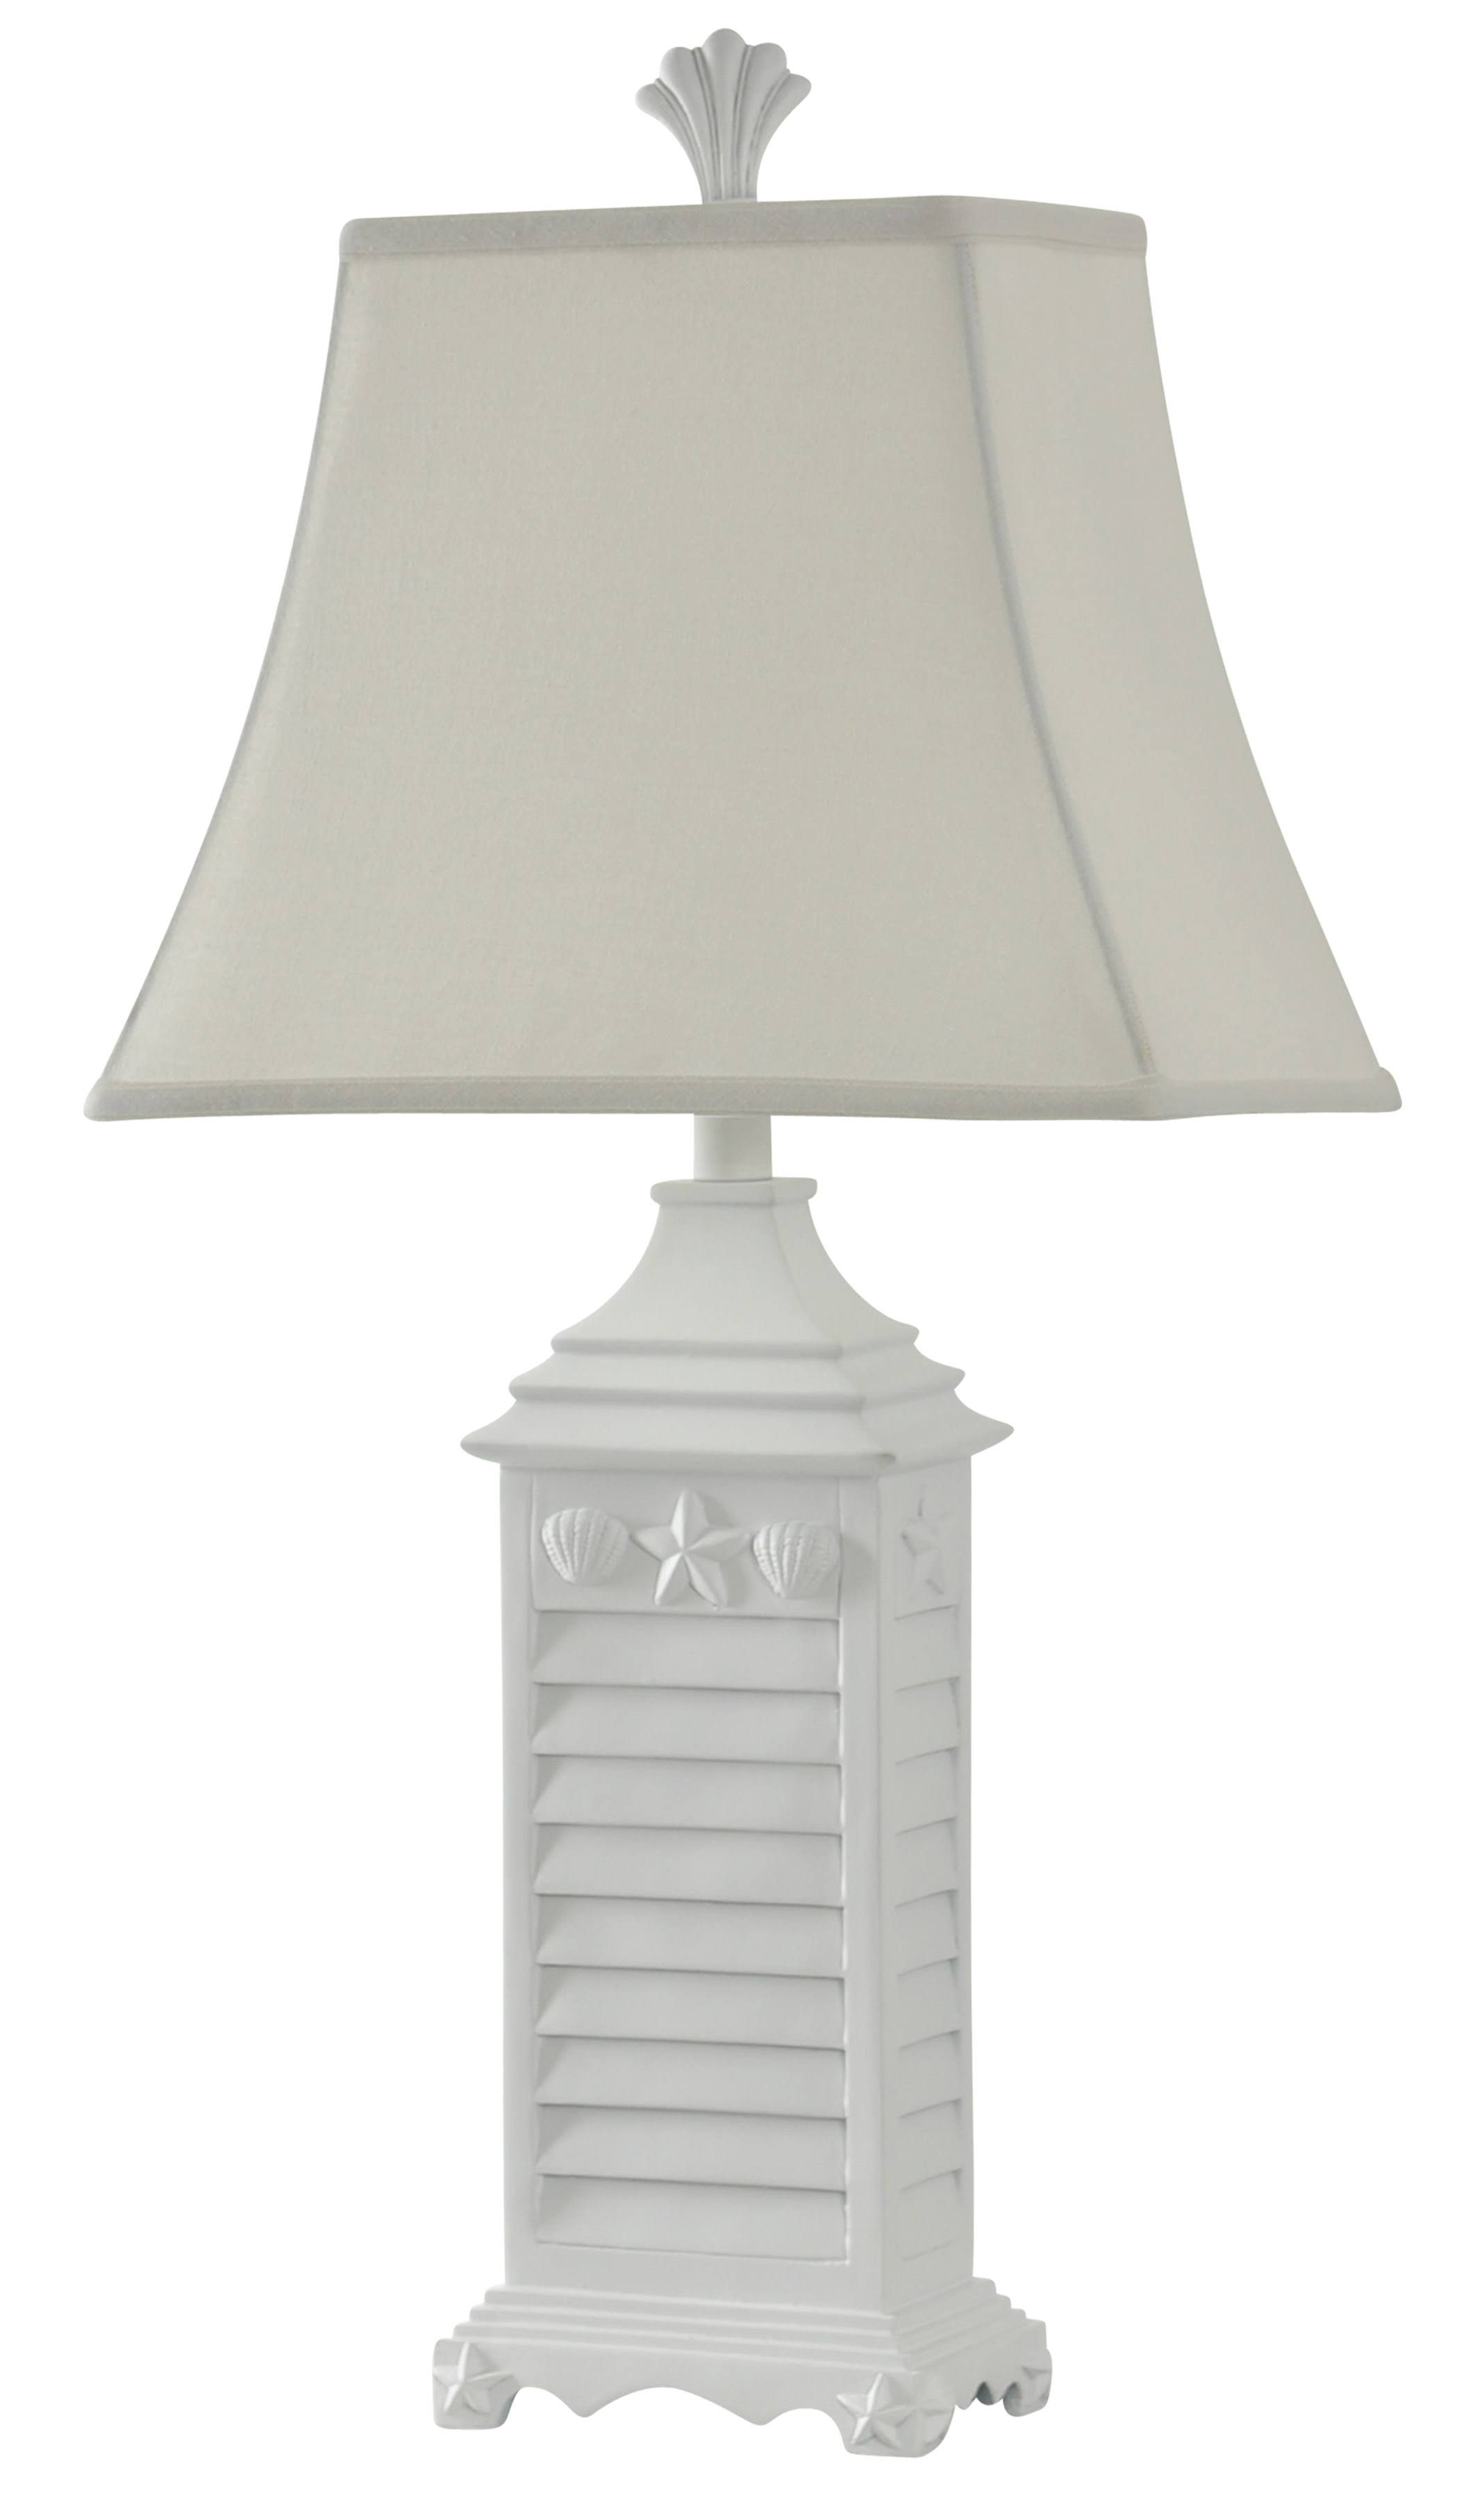 Gwg Outlet Table Lamp in White of Monterey Finish L32382DS